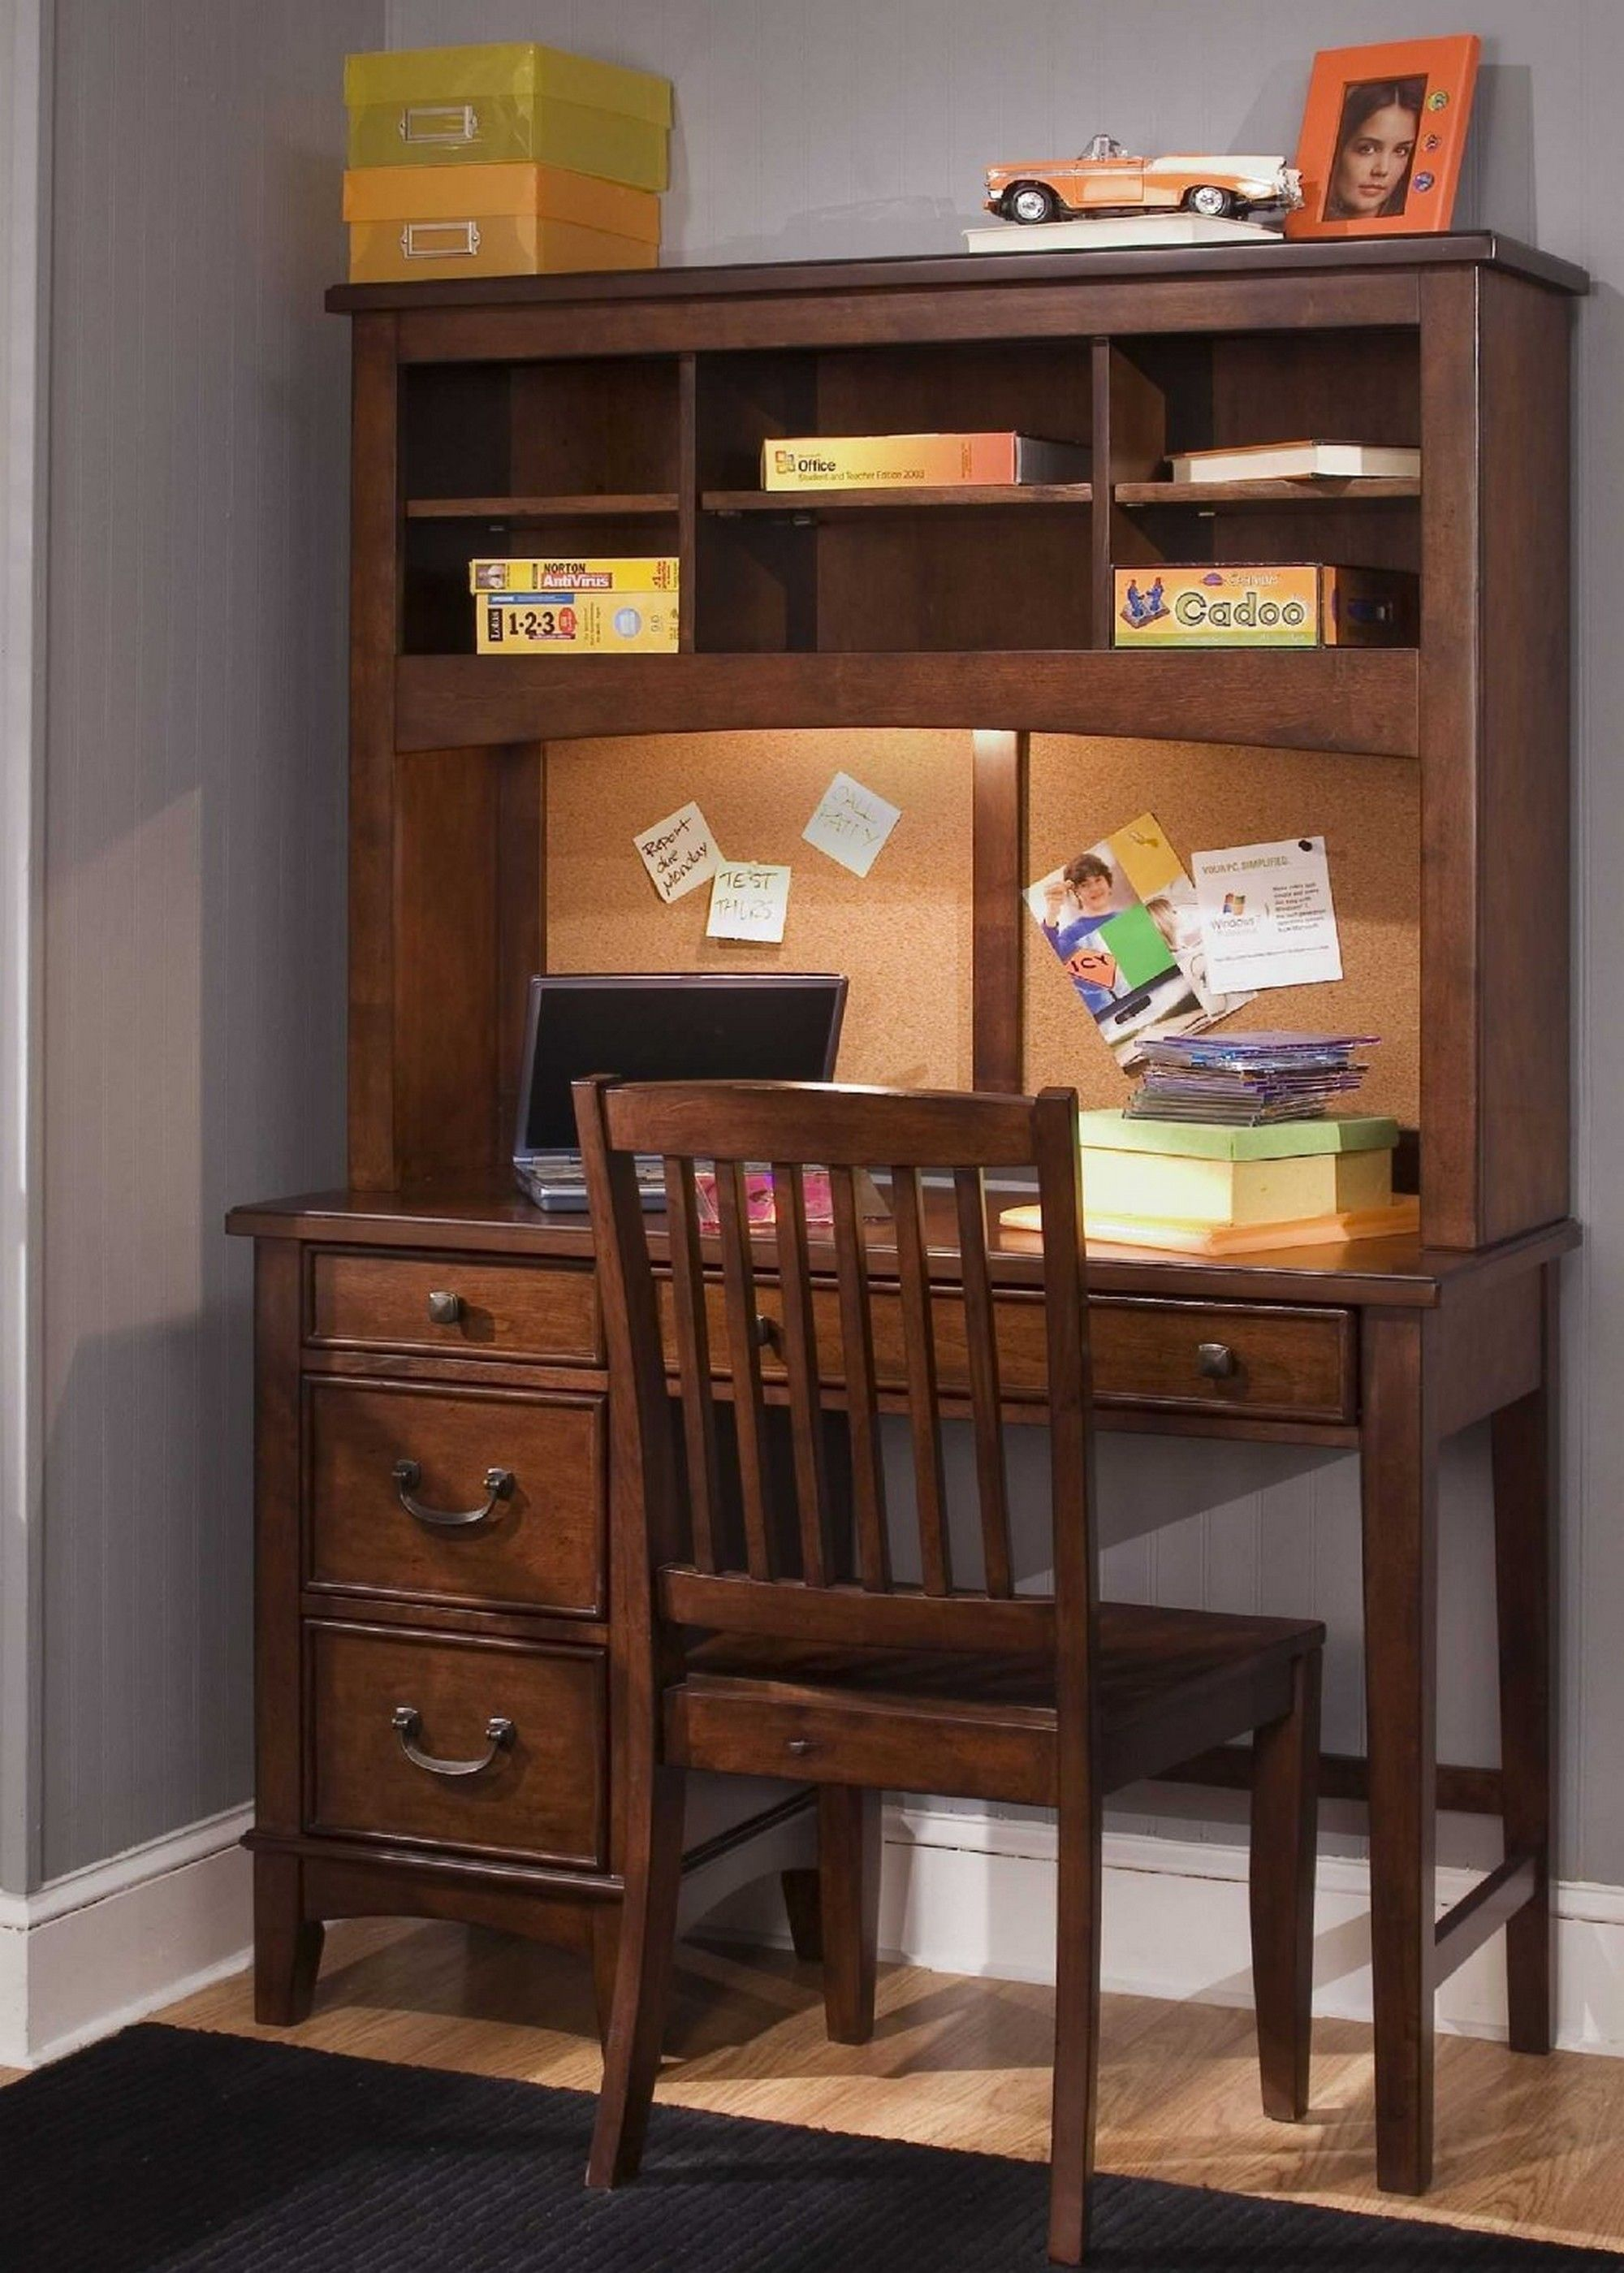 Ordinaire Bedroom Traditional Study Table For Small Rooms Decorated Standing Shelves  Finest Study Table For Small Rooms Increasing Kids Passion Design Ideas The  ...